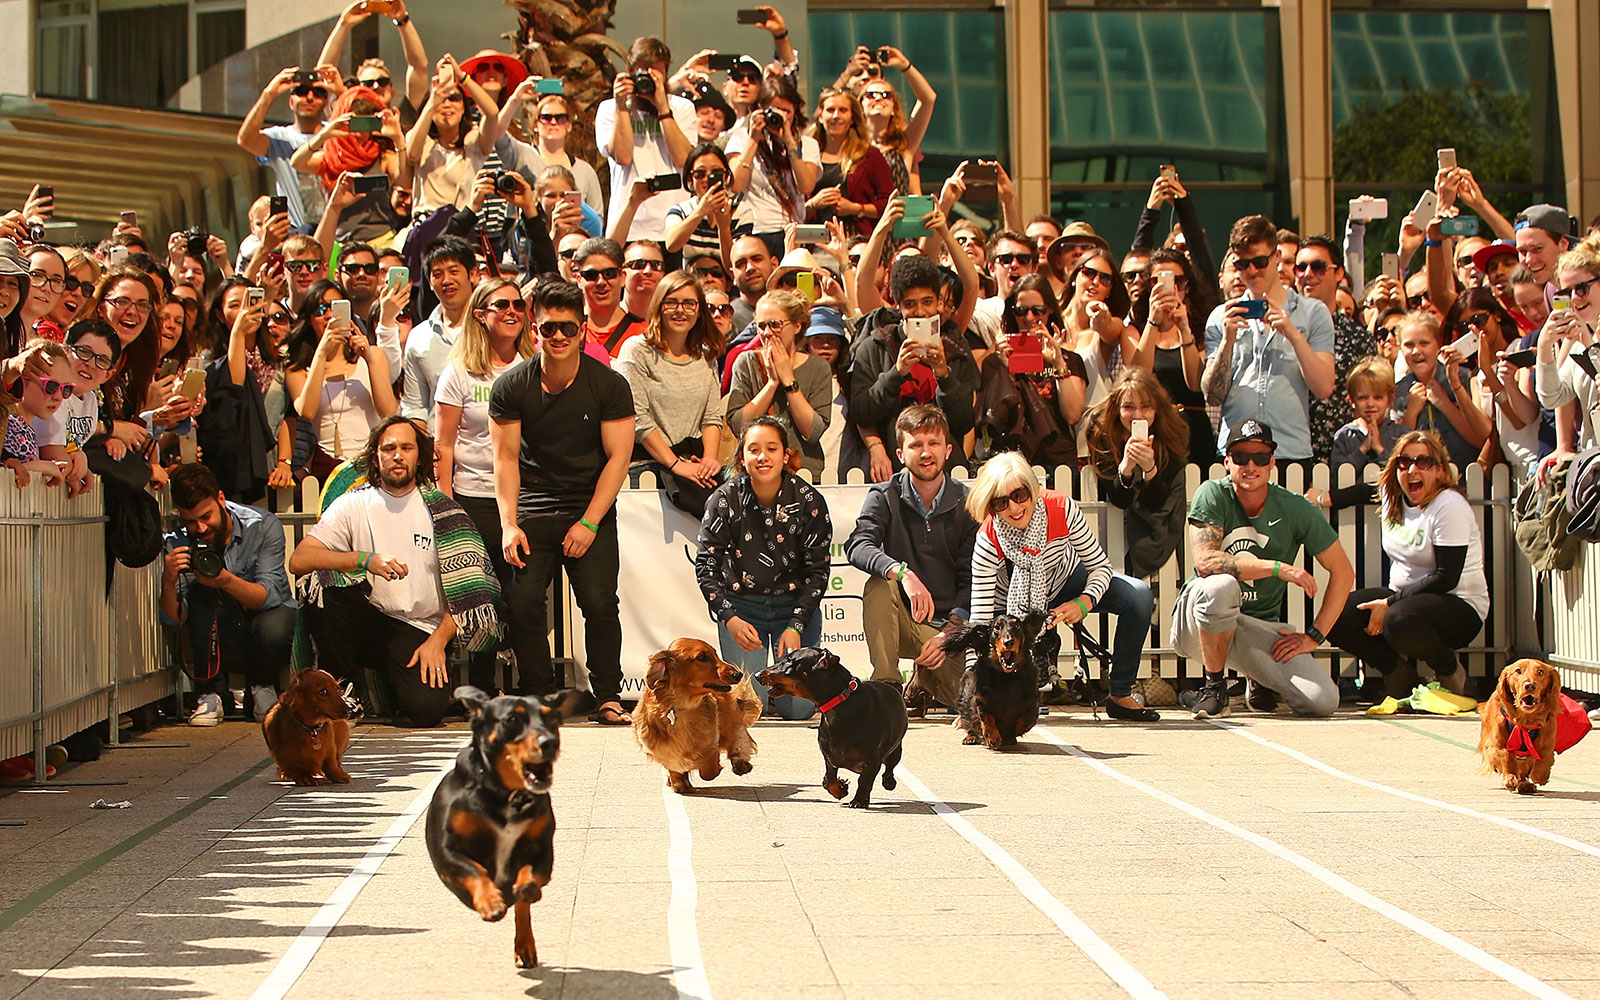 Wiener Dog Races (and Other Amazing Competitions)